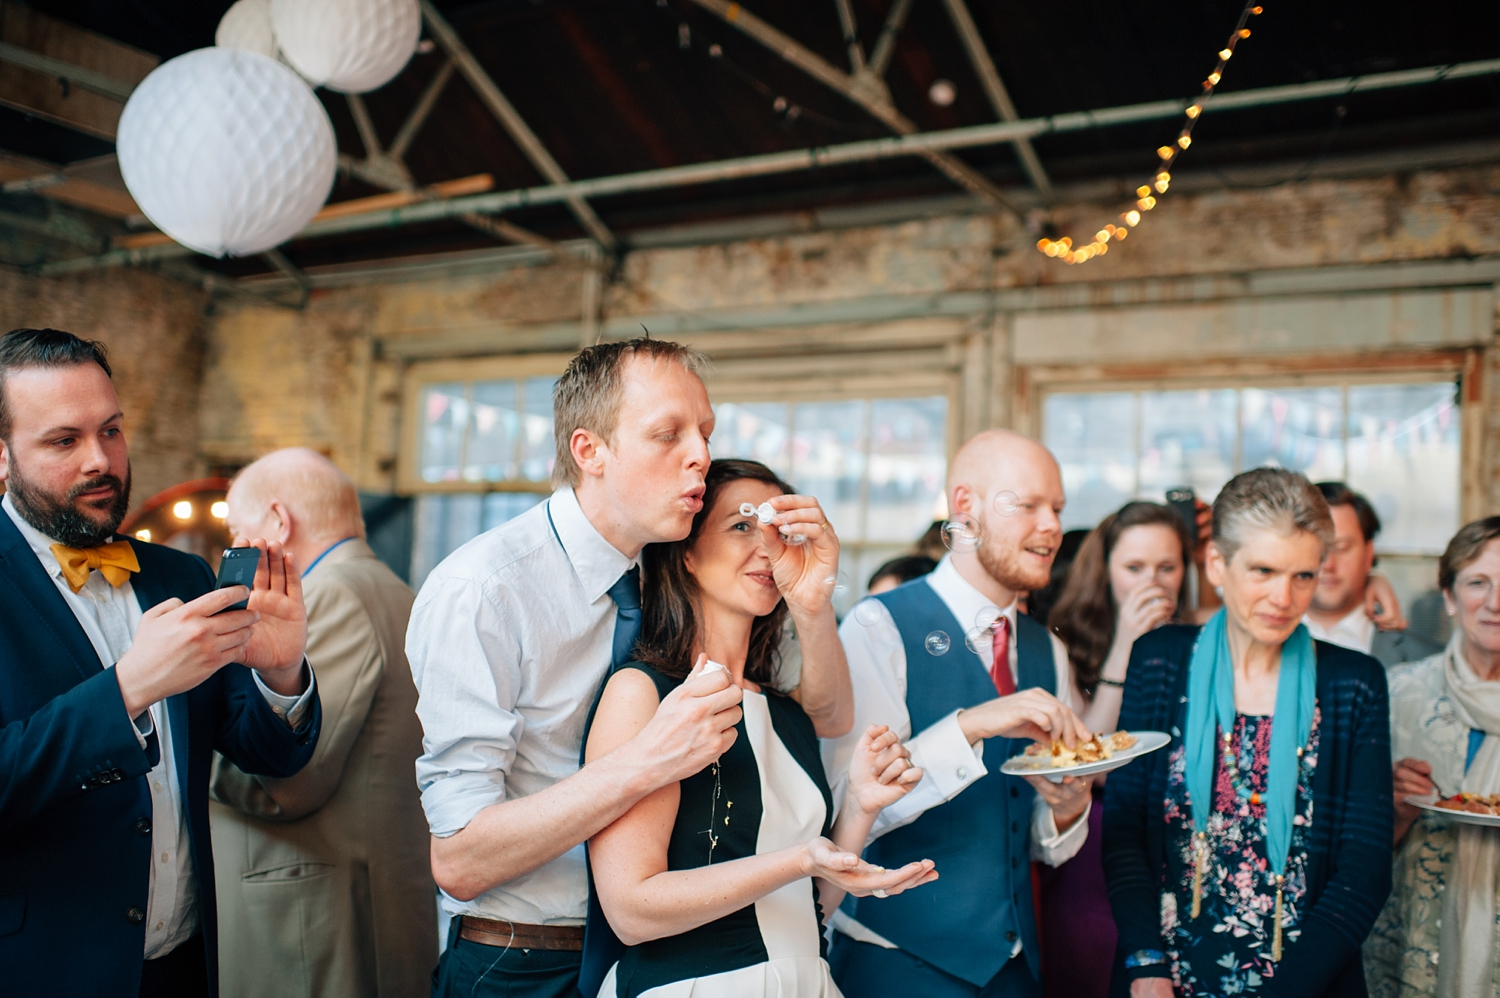 0197-lisa-devine-alternative-wedding-photography-london-hackney-dalston-london-photography-townhall-hotel.JPG